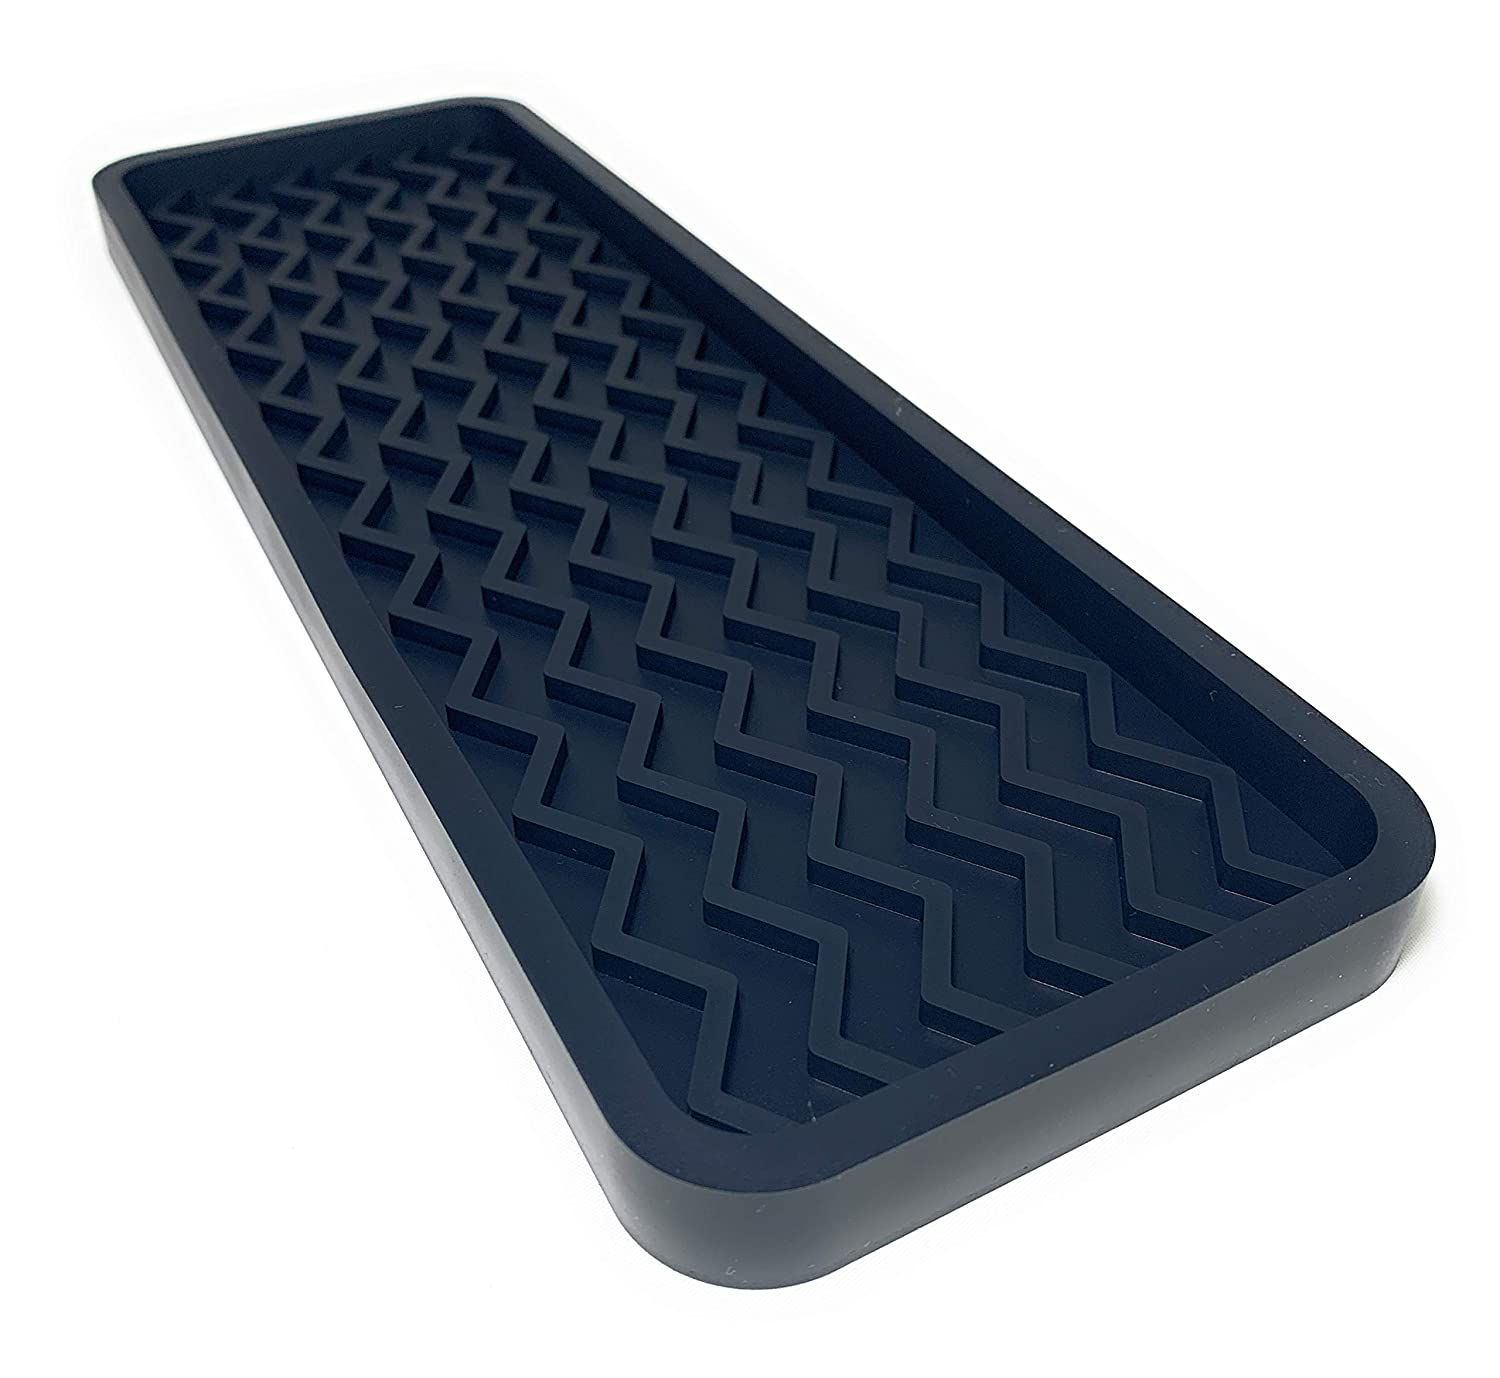 Silicone Kitchen Sink Organizer Tray, 12 inches x 4 inches, 9.2 ounces (BLACK)